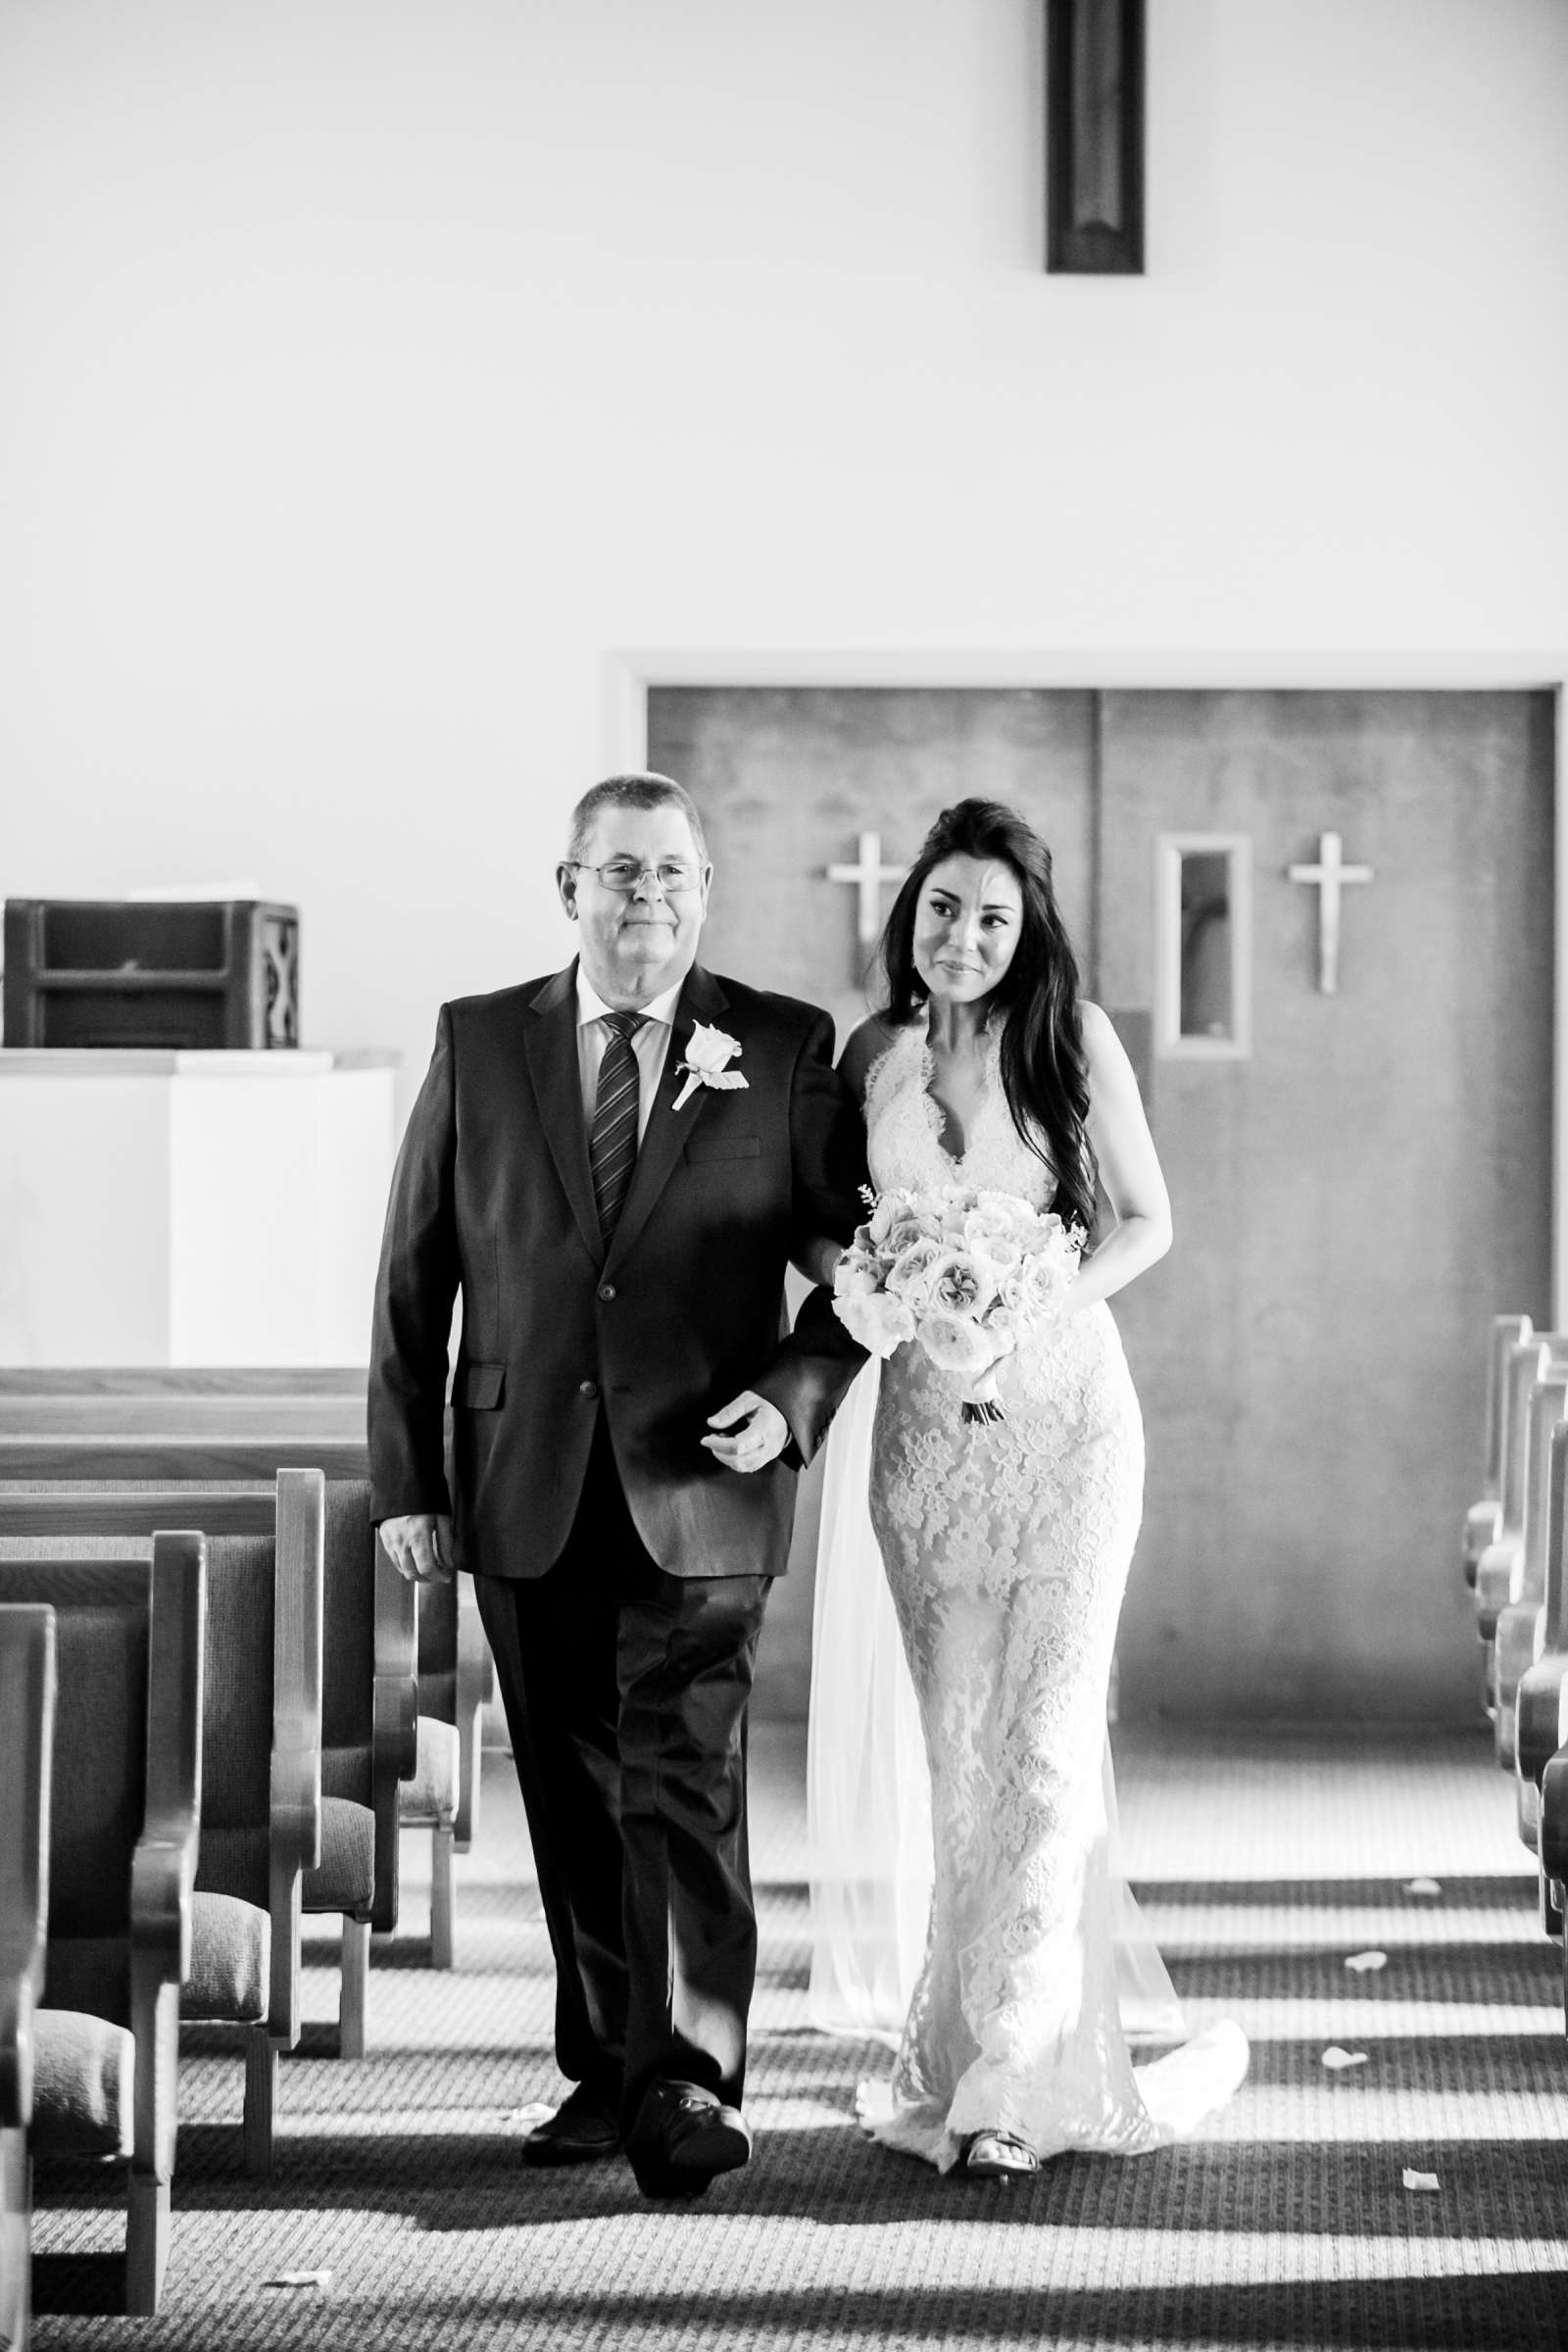 La Valencia Wedding coordinated by First Comes Love Weddings & Events, Lea and Nick Wedding Photo #21 by True Photography